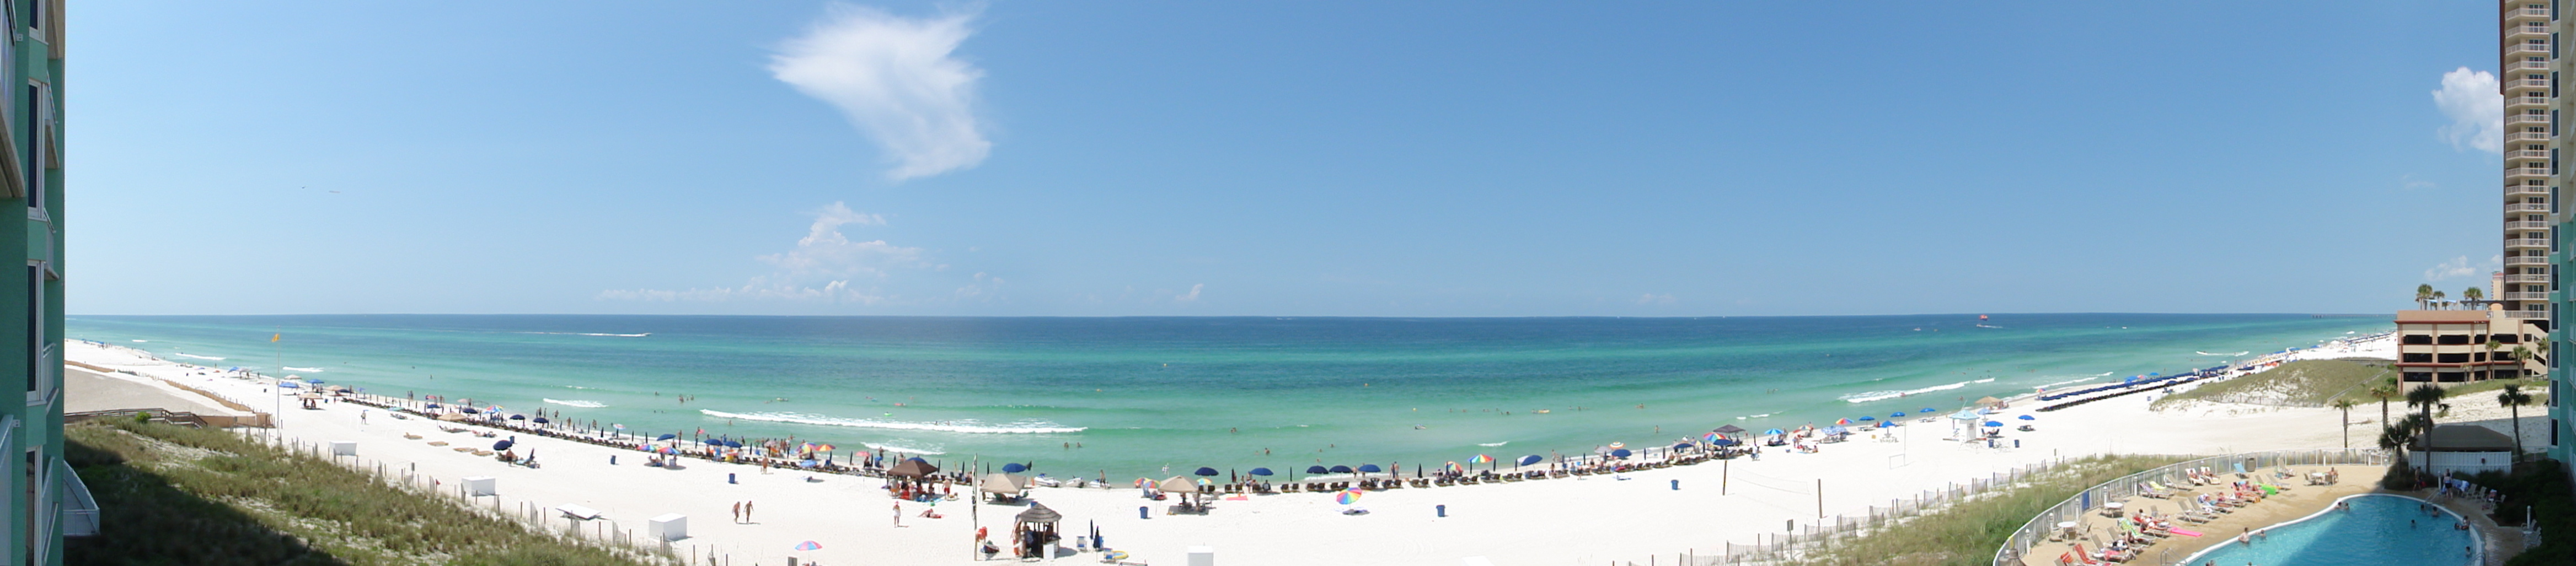 Panama City Beach Summer